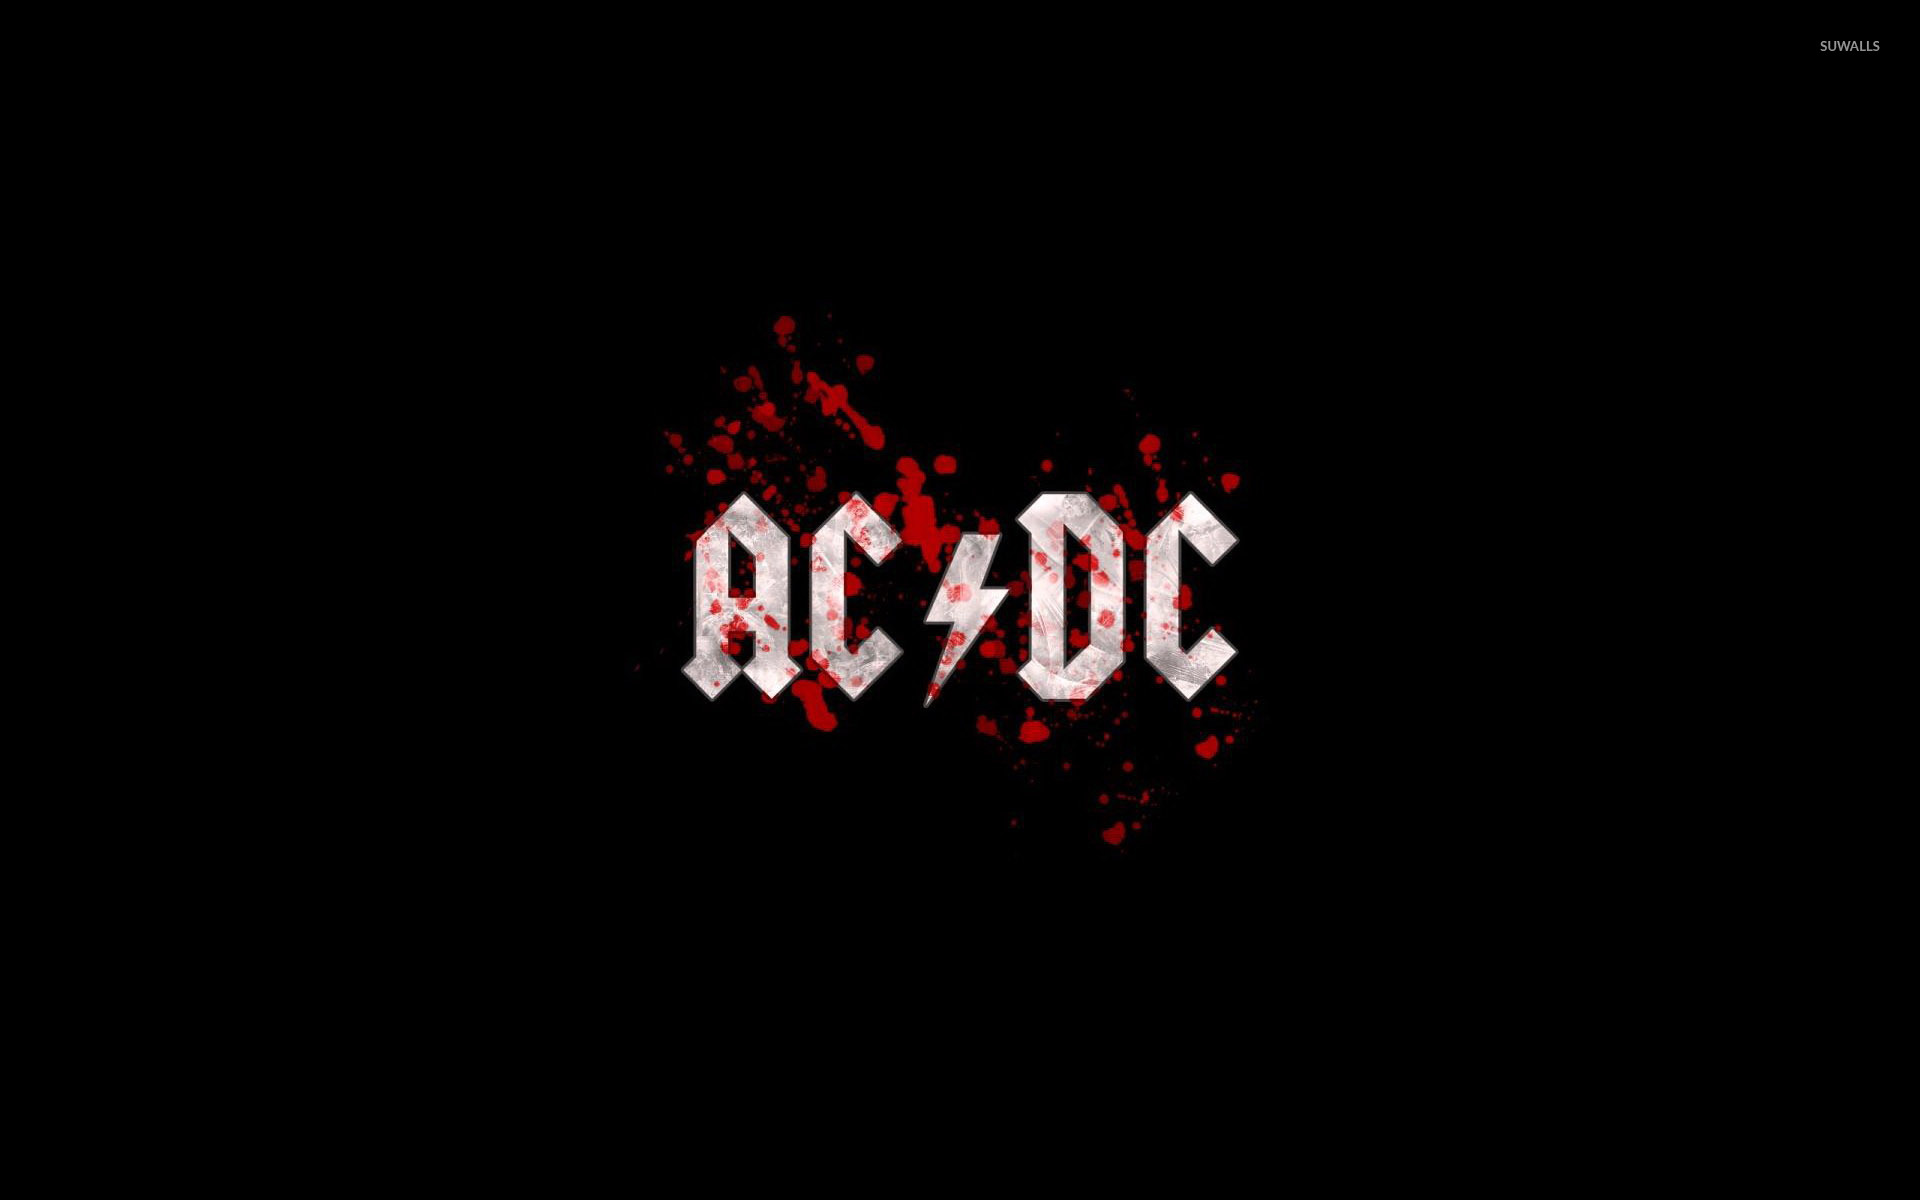 AC DC Wallpaper Music Wallpapers 29105